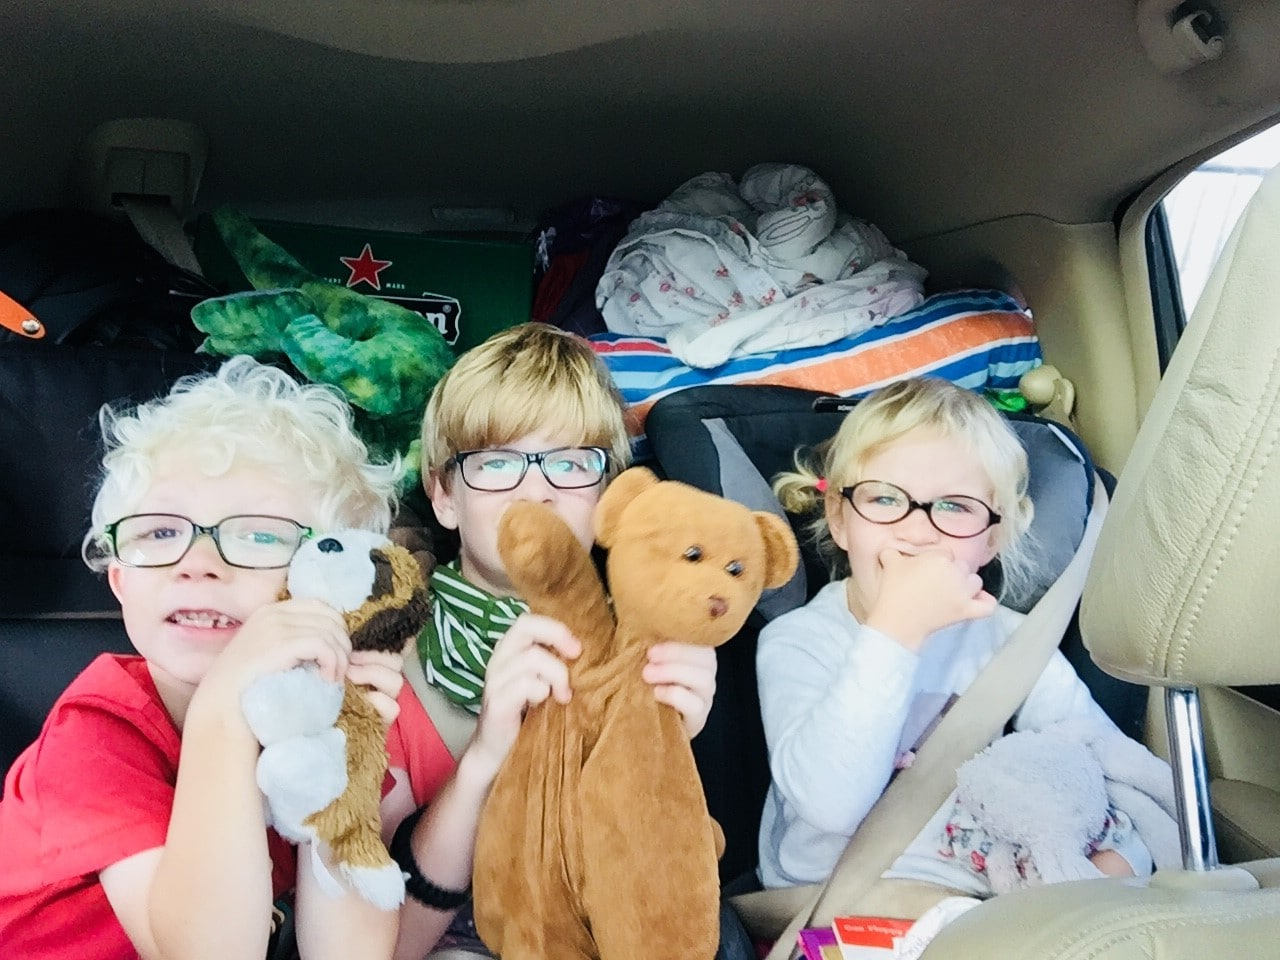 Children in car ready for road trip to Duinrell